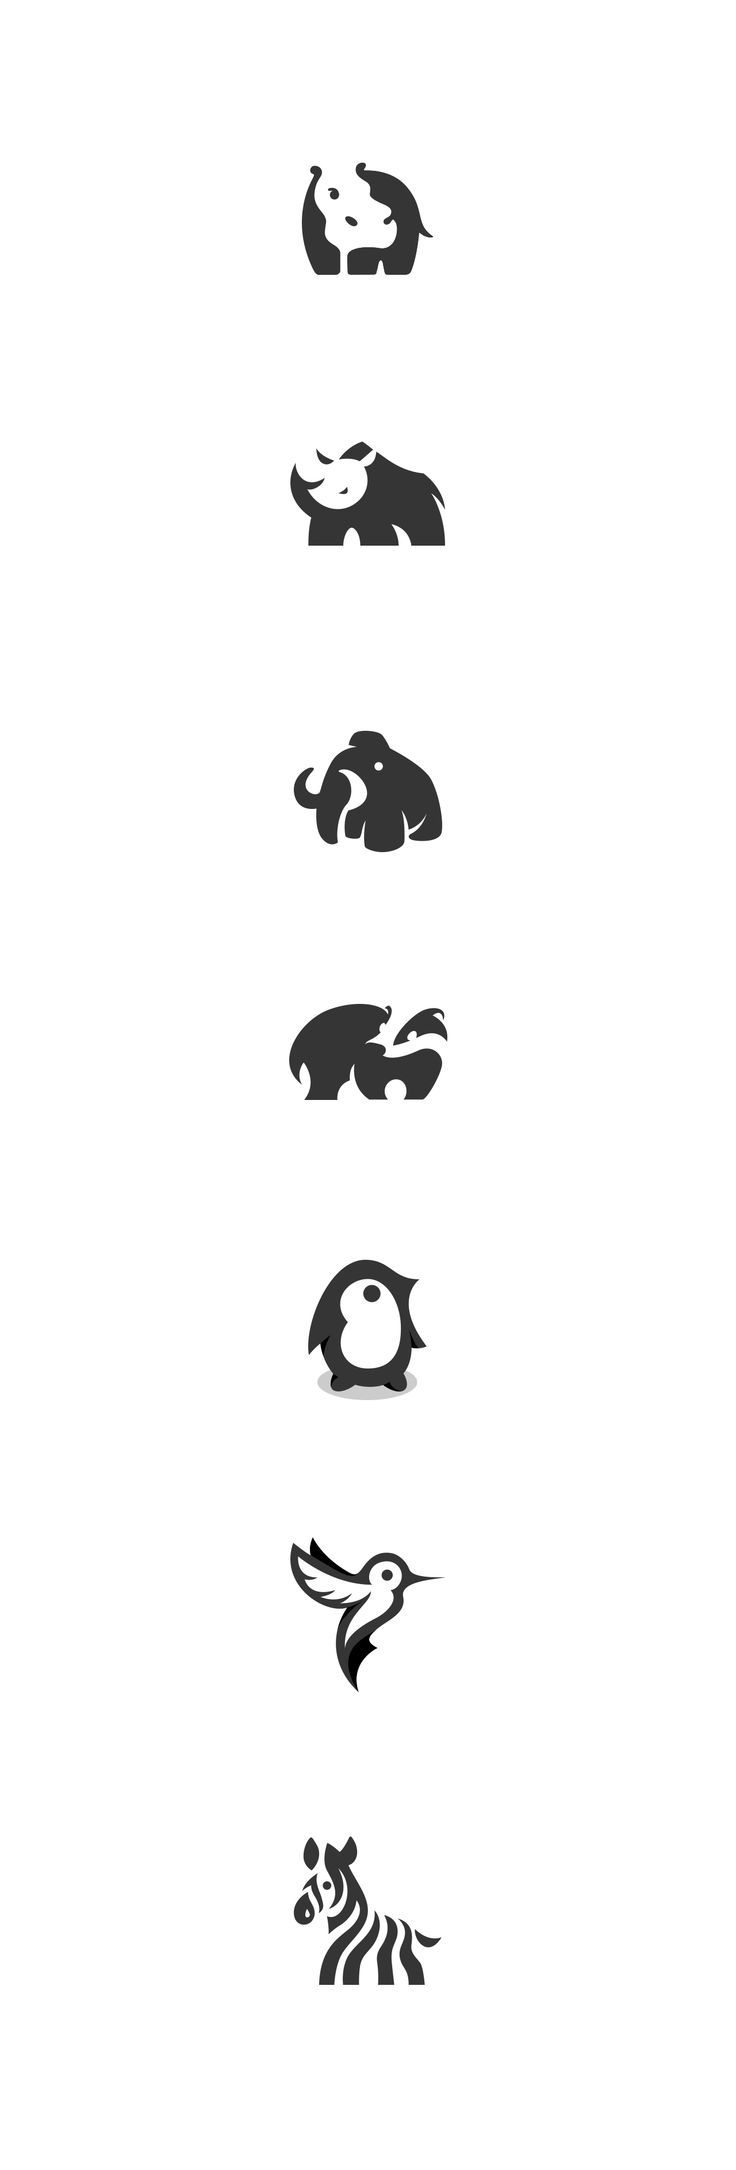 tatto ideas 2017 here are some of my selected negative space animal logo designs negative - Logo Designs Ideas